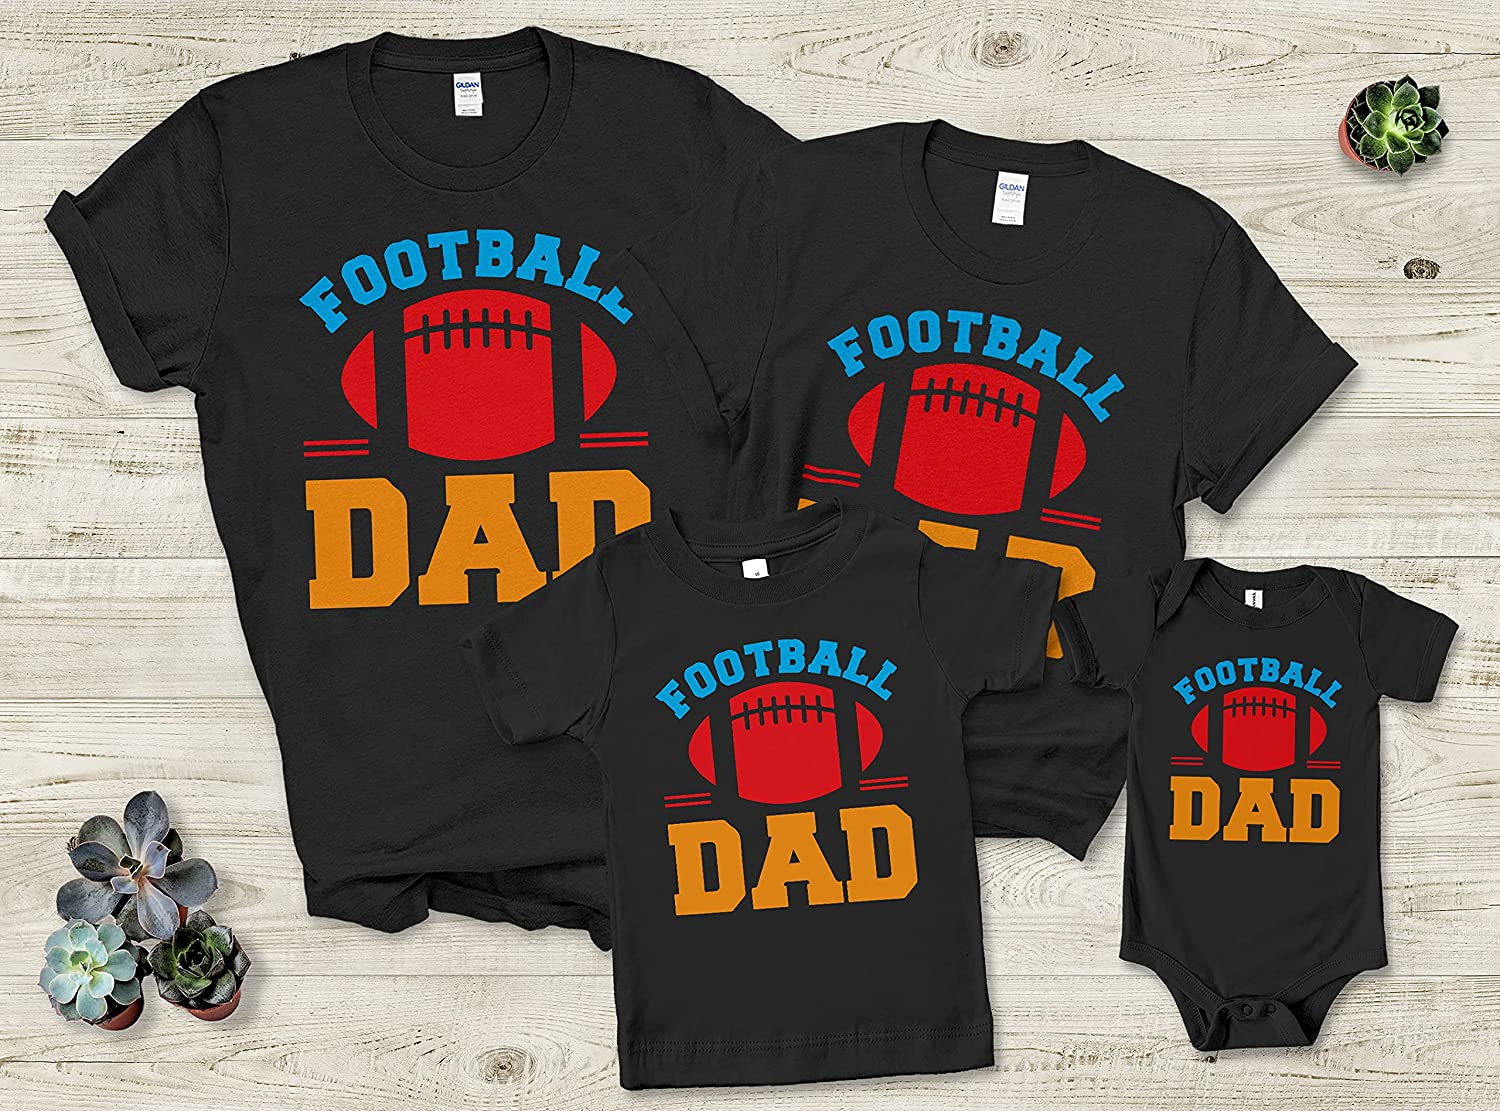 Father Mother Parents Day 2021 Football Dad Custom Personalized Family T-Shirts Gifts